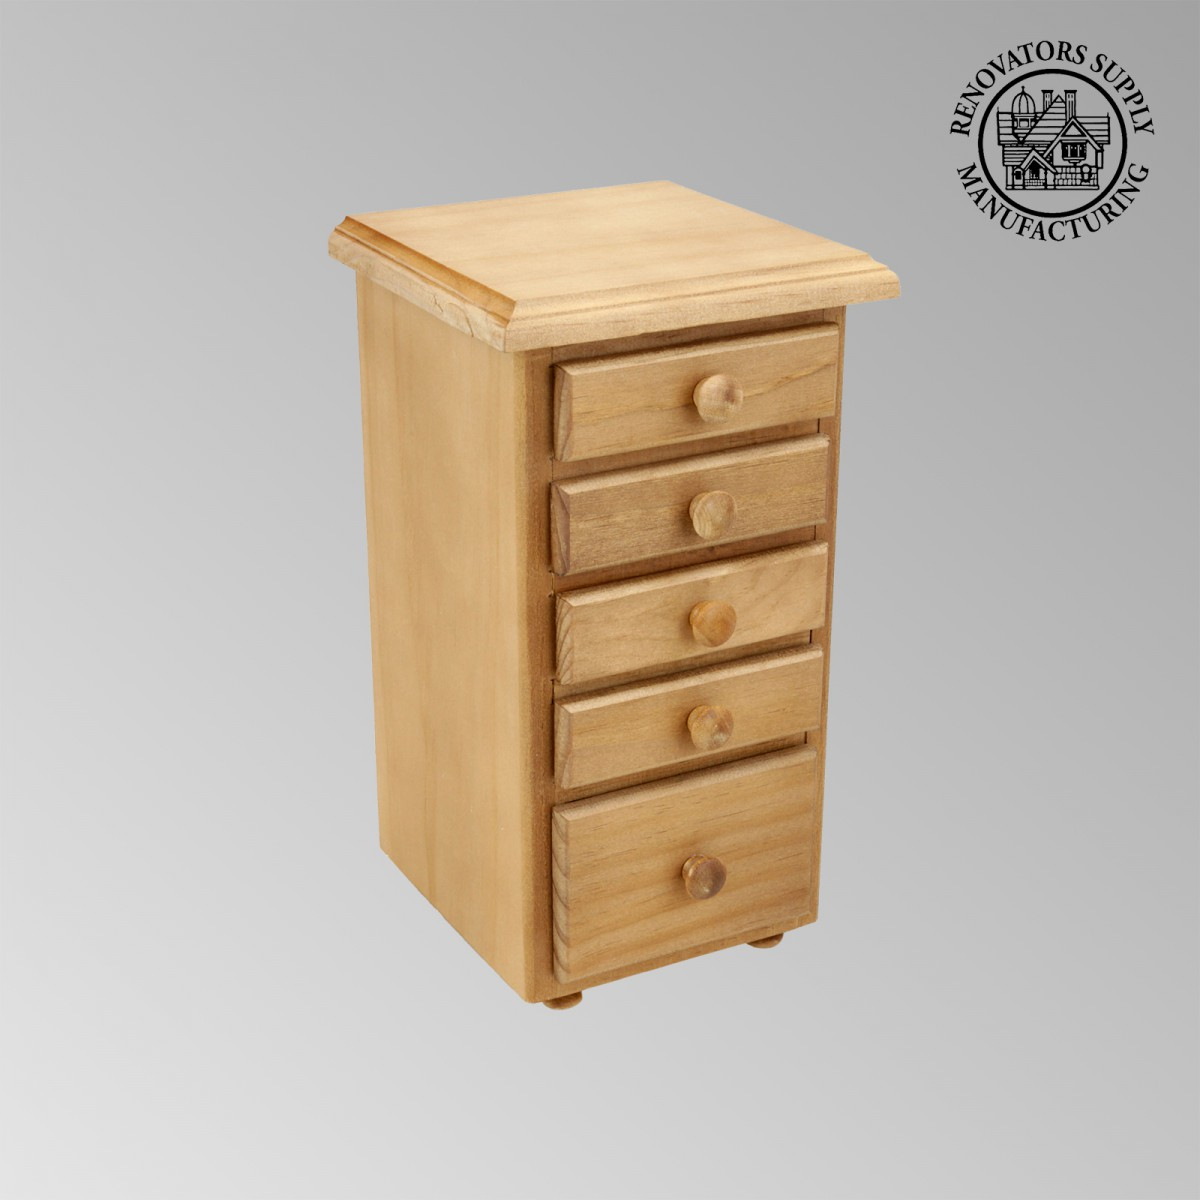 stafford dp unfinished dresser renovators of dining supply drawer amazon renovator kitchen chest com pine kit s drawers